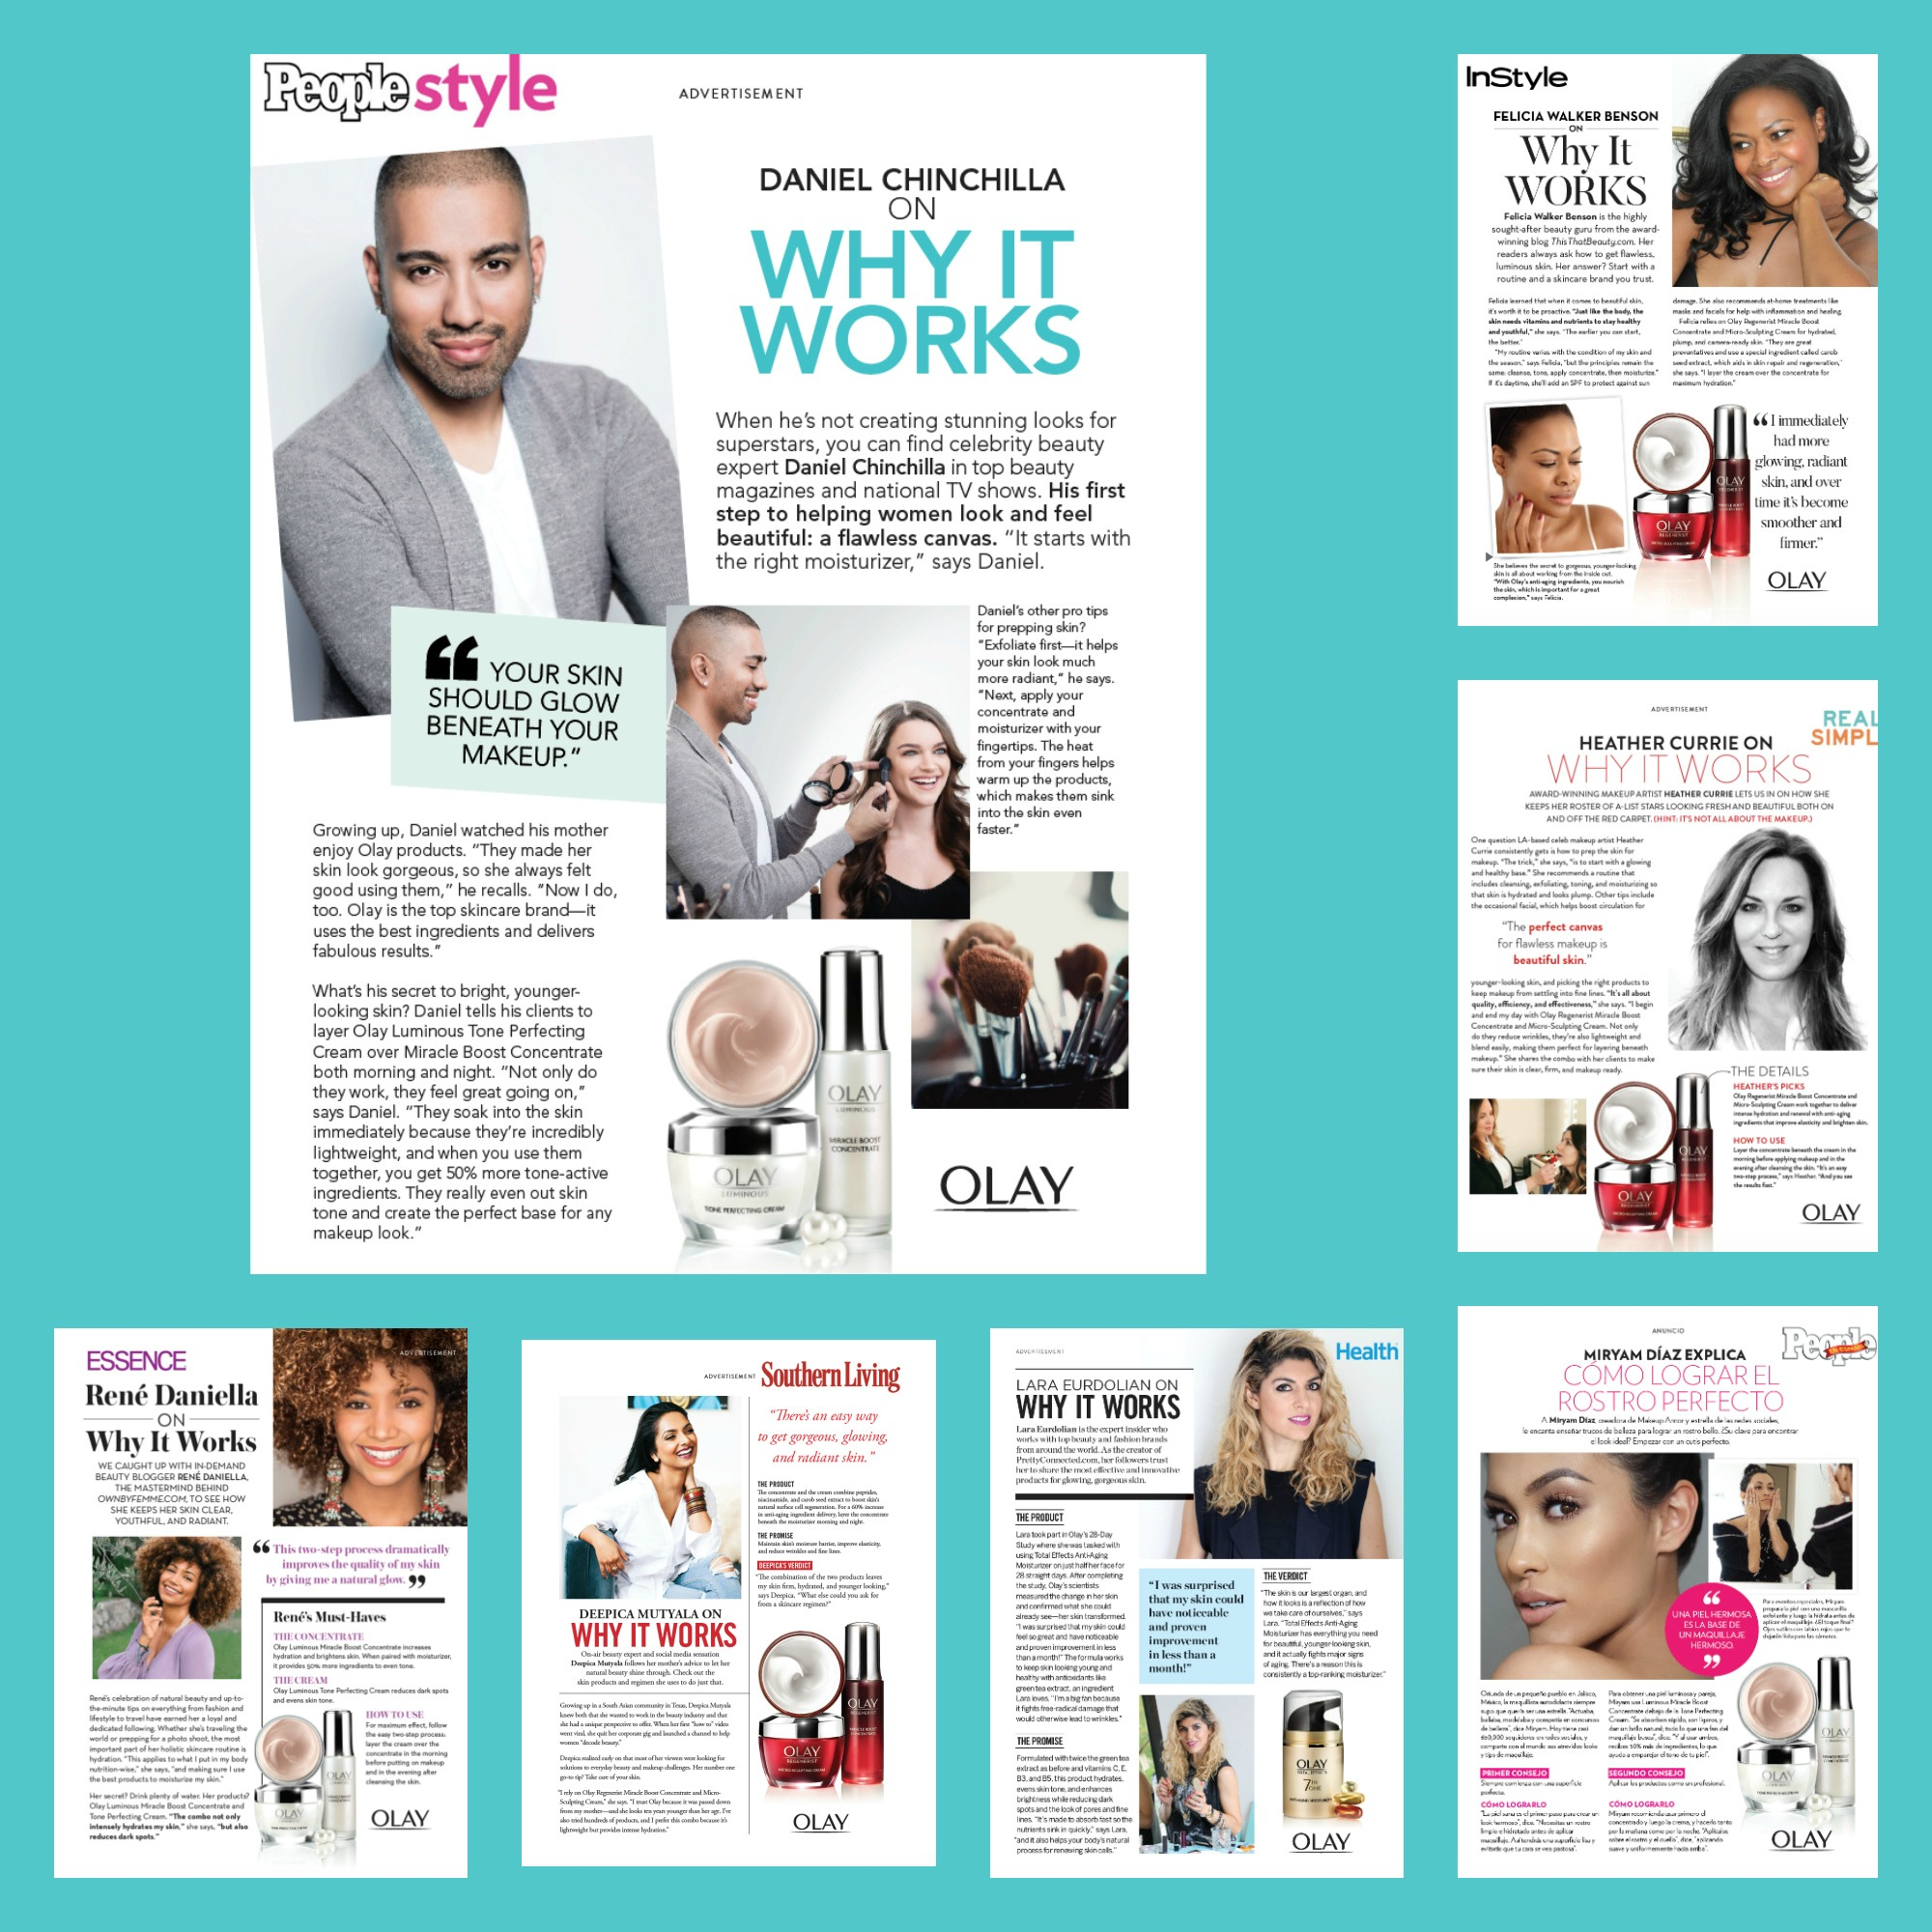 Full-page branded content each featuring different influencers for Olay in print editions of  People, InStyle, Real Simple, People en Espanol, Health, Southern Living,  and  Essence.  The Q4 campaign was so successful, it was duplicated for Q1 inclusions the following year.